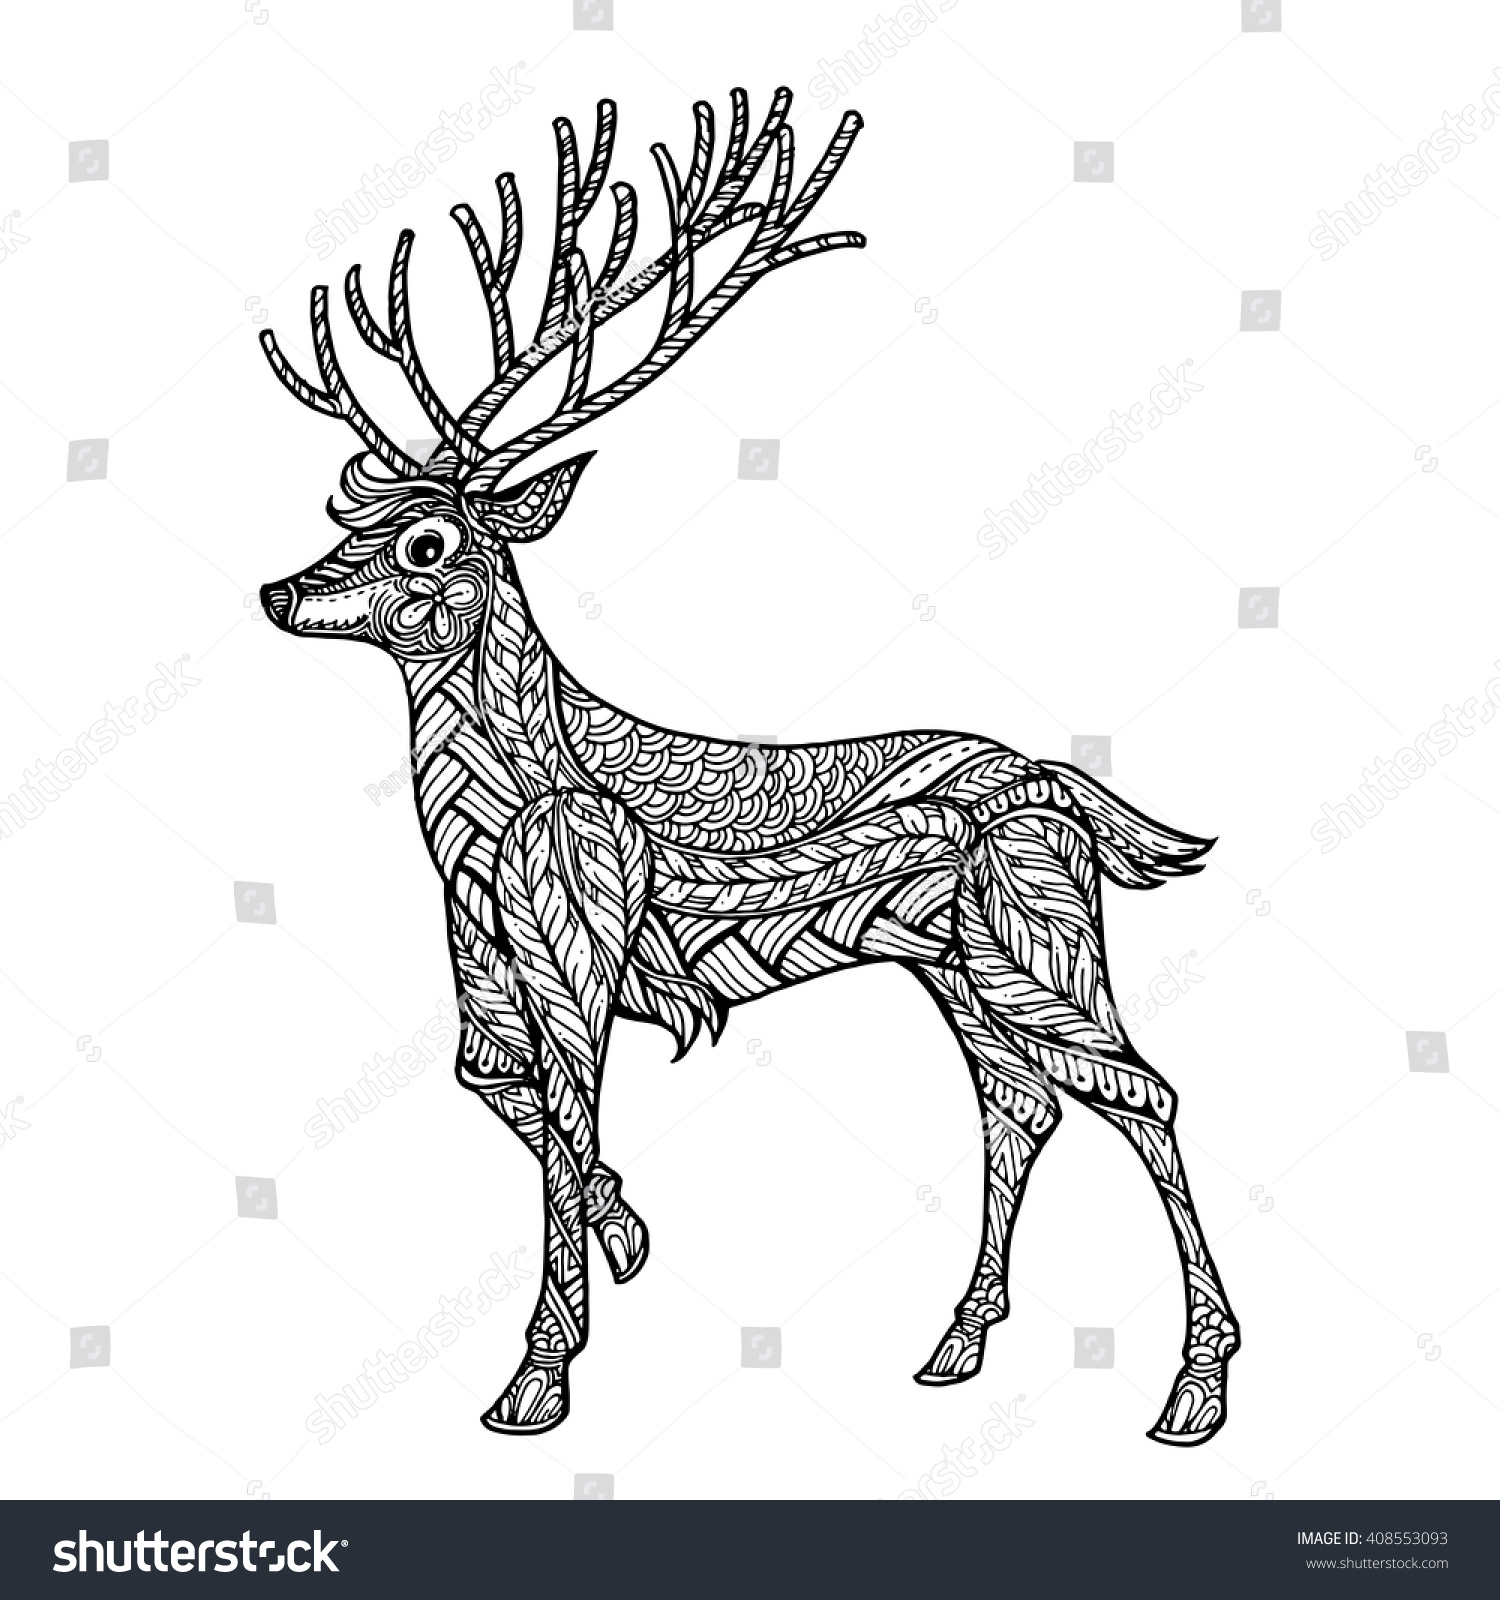 hand drawn ethnic ornamental patterned deer stock vector 408553093